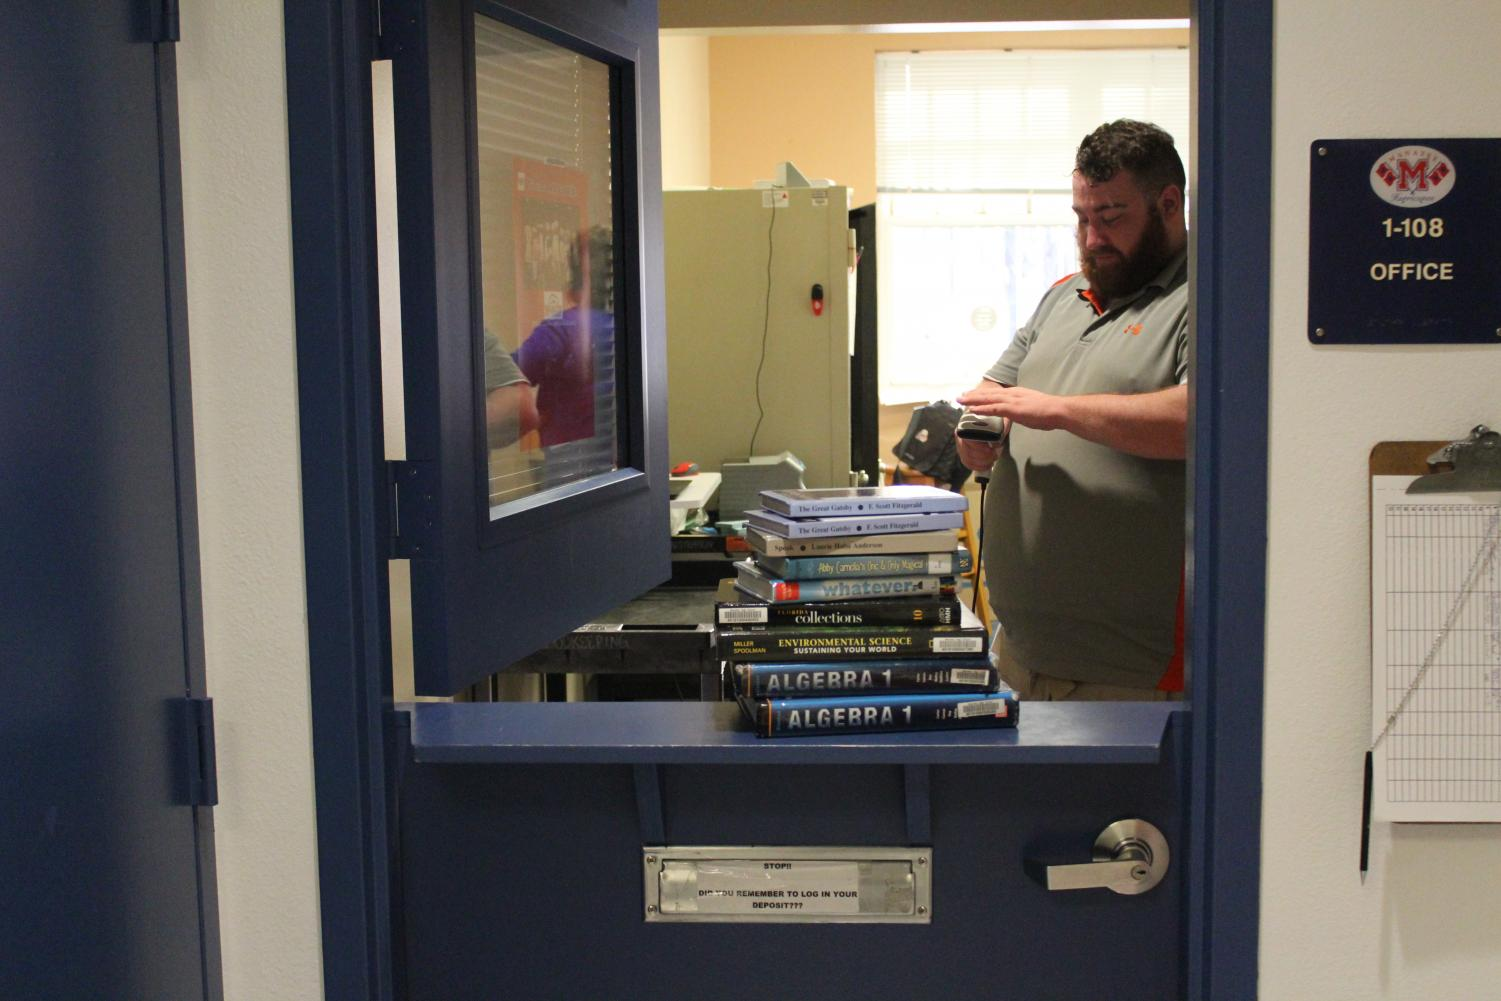 BOOKKEEPING- Turning in books and money allows student to clear their debt. Debt is predominantly from unreturned textbooks. Mr. Lauster, the assistant bookkeeper, laughed,